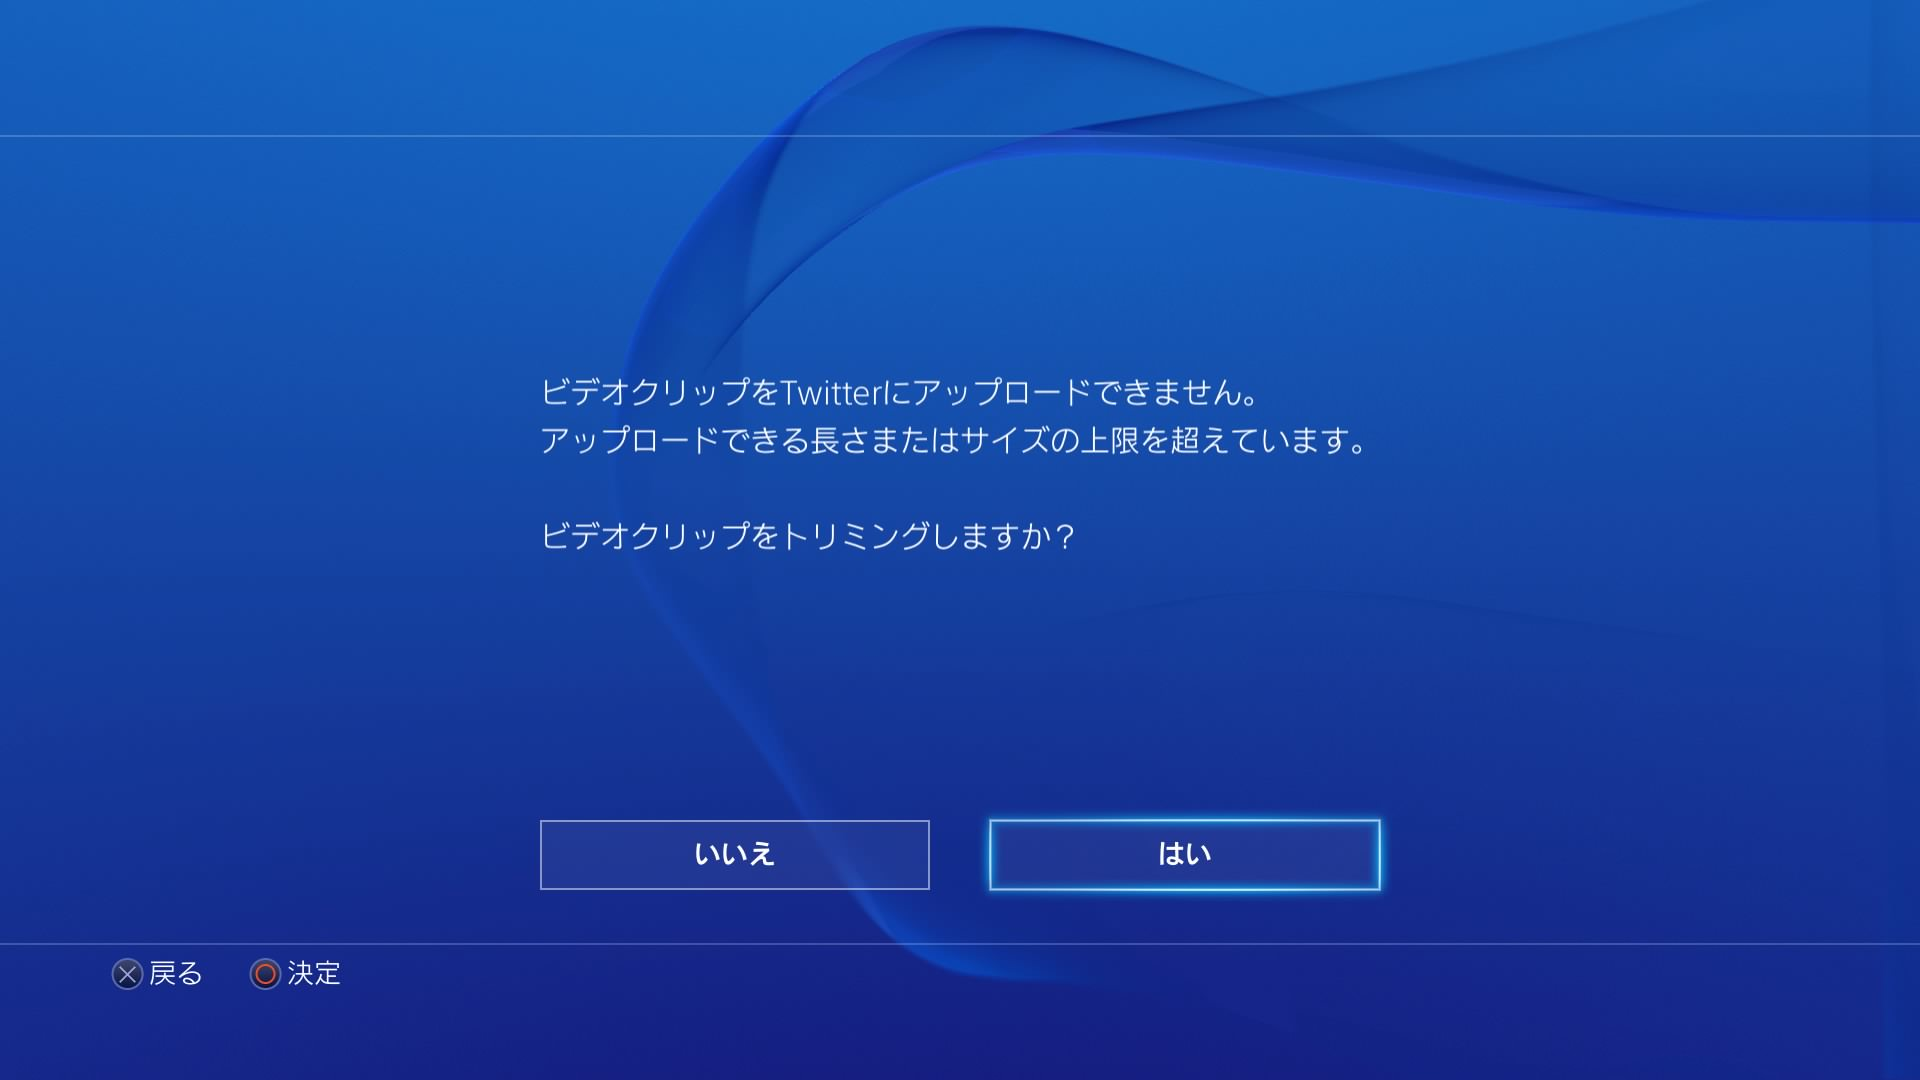 How to upload video for twitter from playstation 4 5